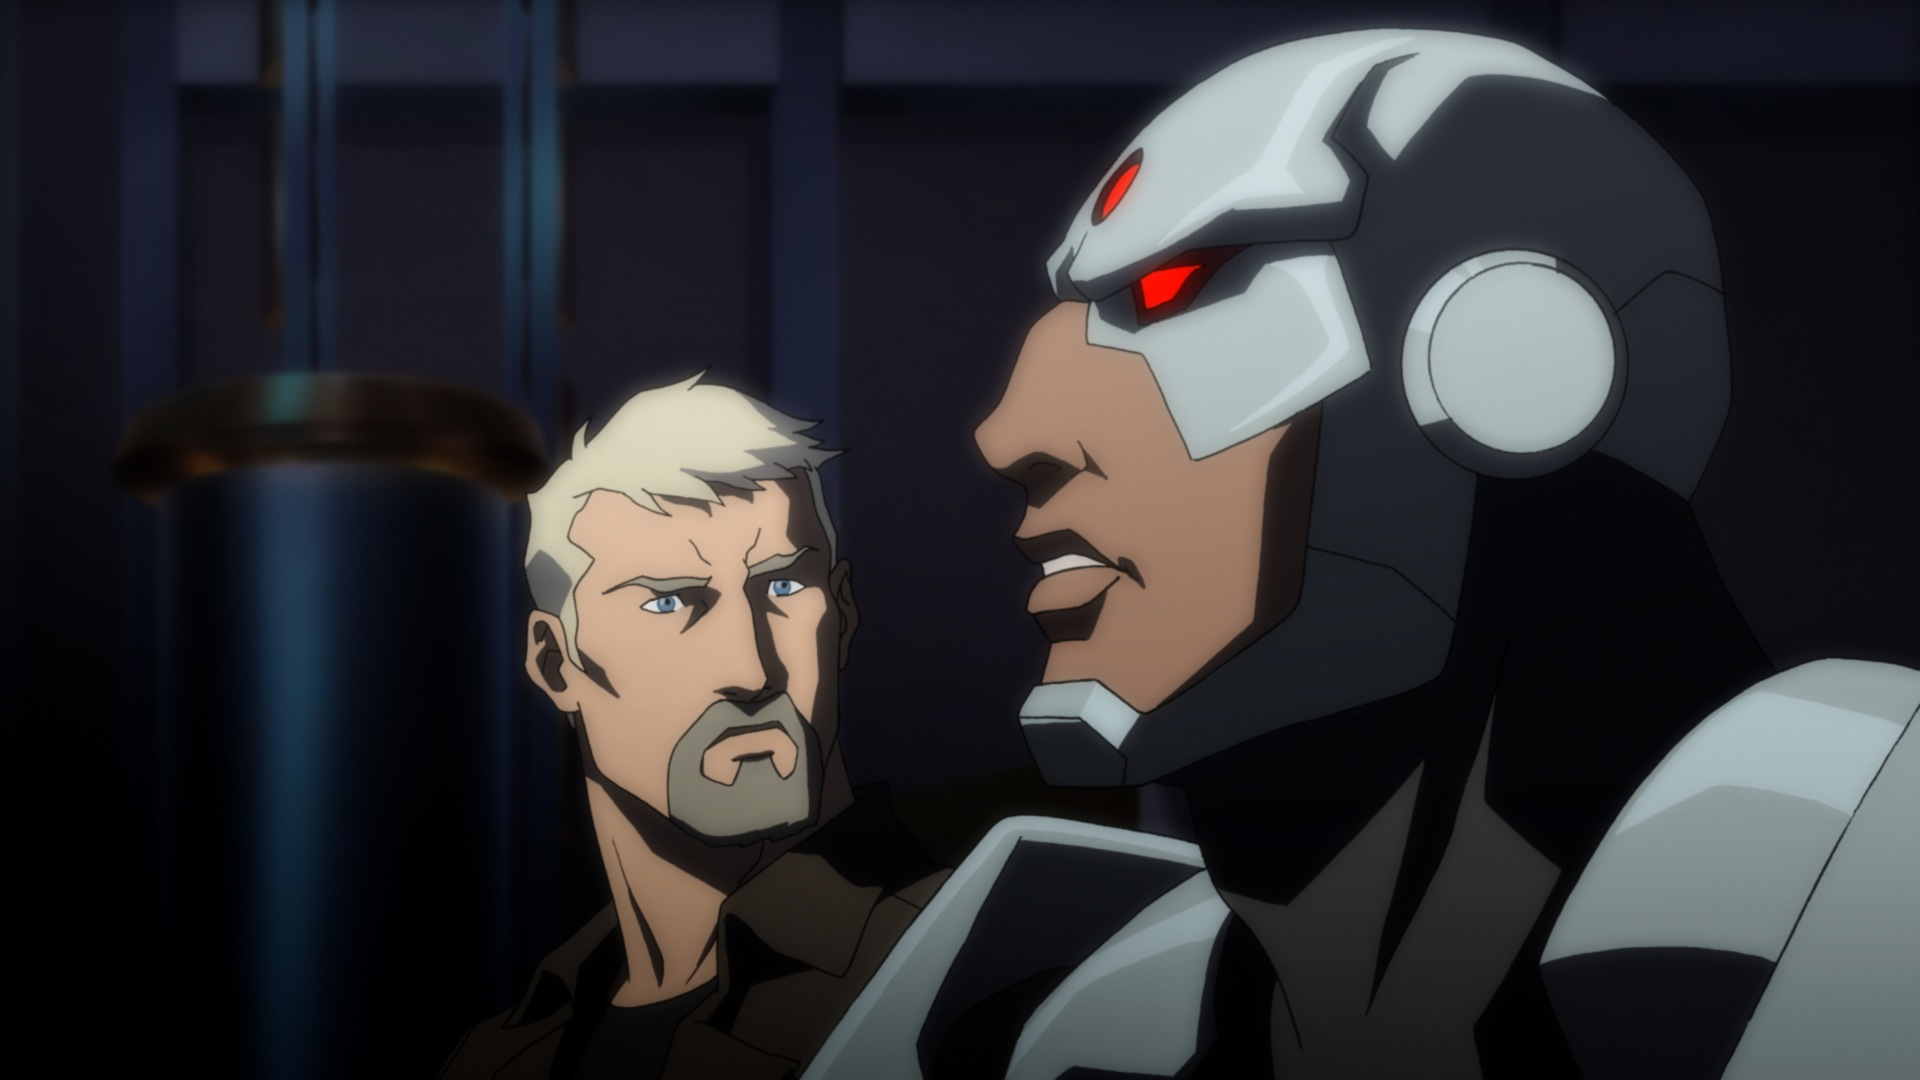 Justice League Throne of Atlantis Wallpaper Try Watching This Video on